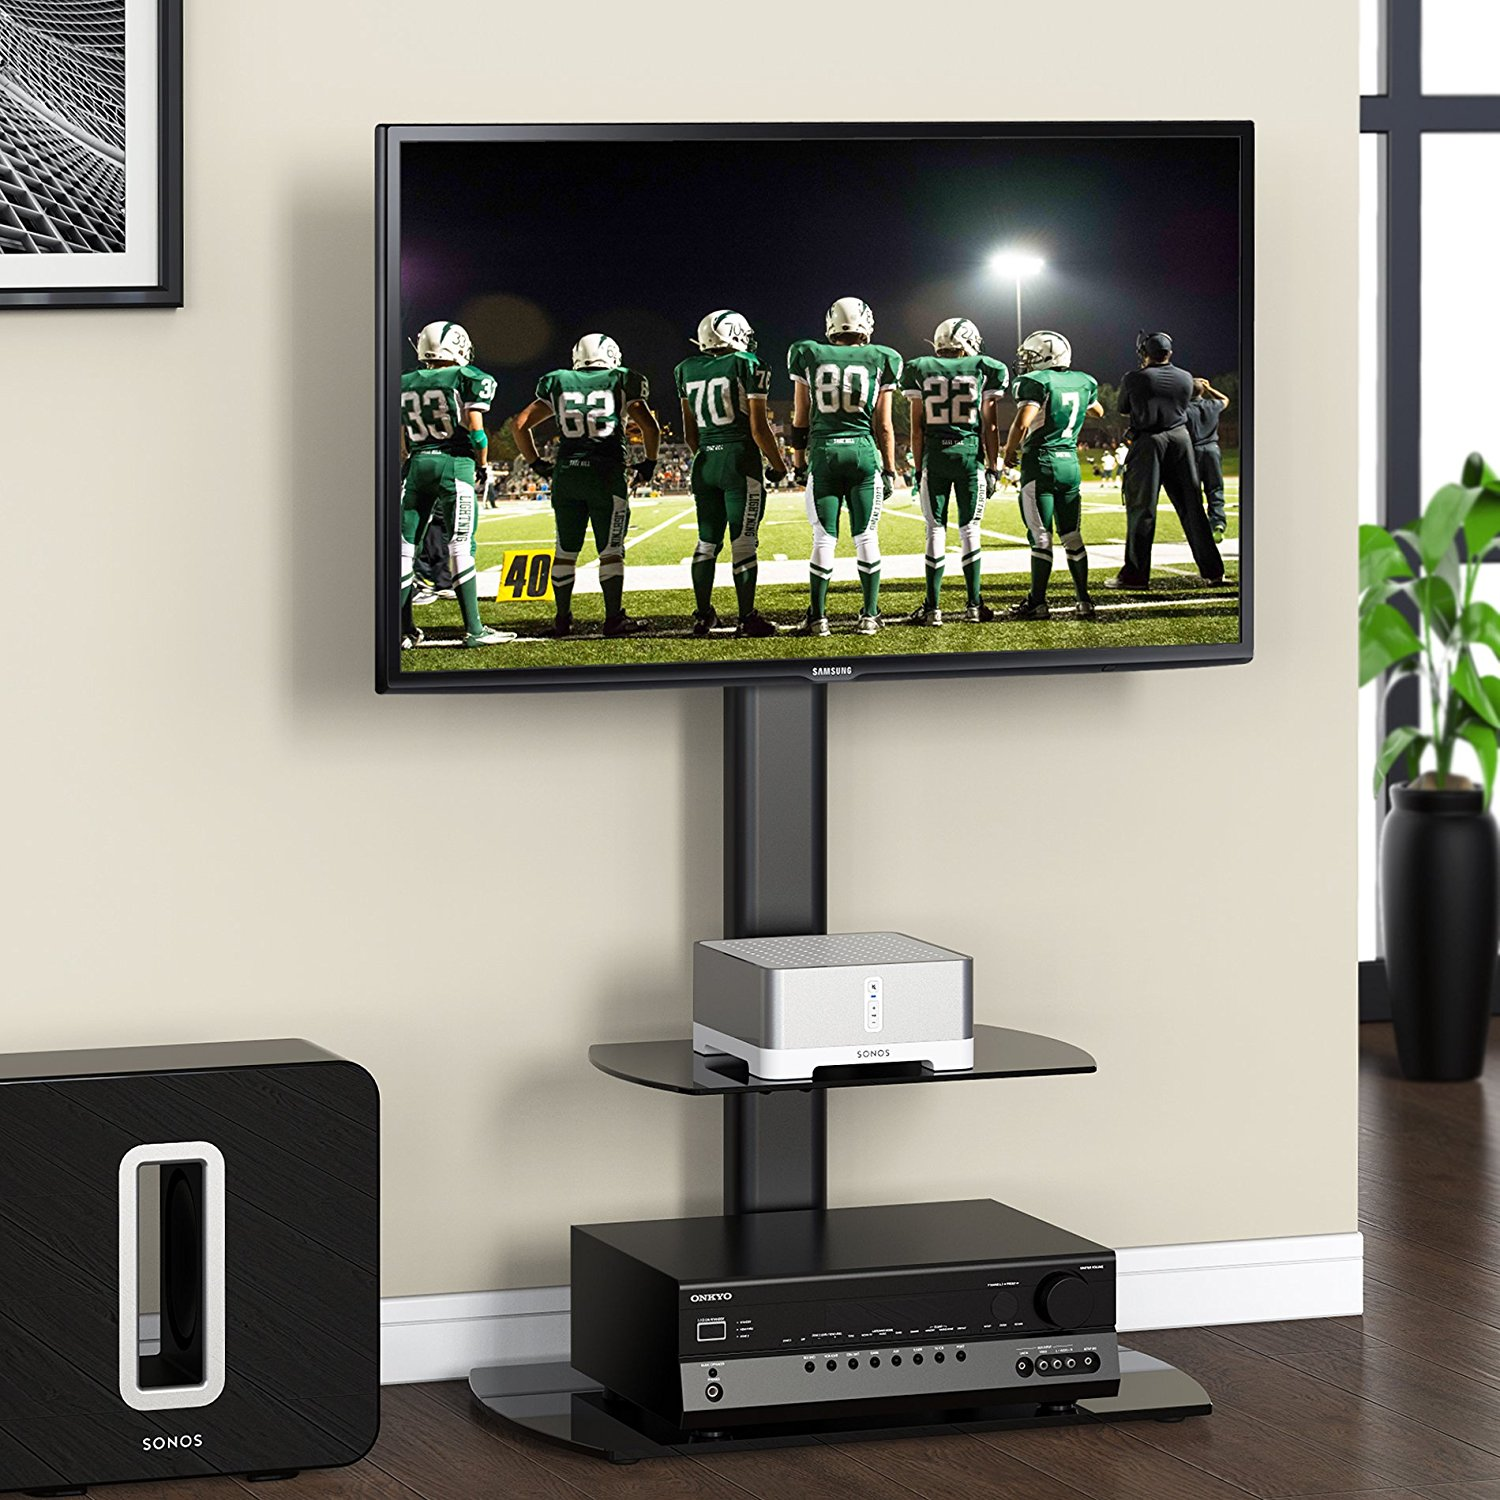 FITUEYES Swivel Floor TV Stand with Mount for 32 to 50 Inch TV TT206501GB